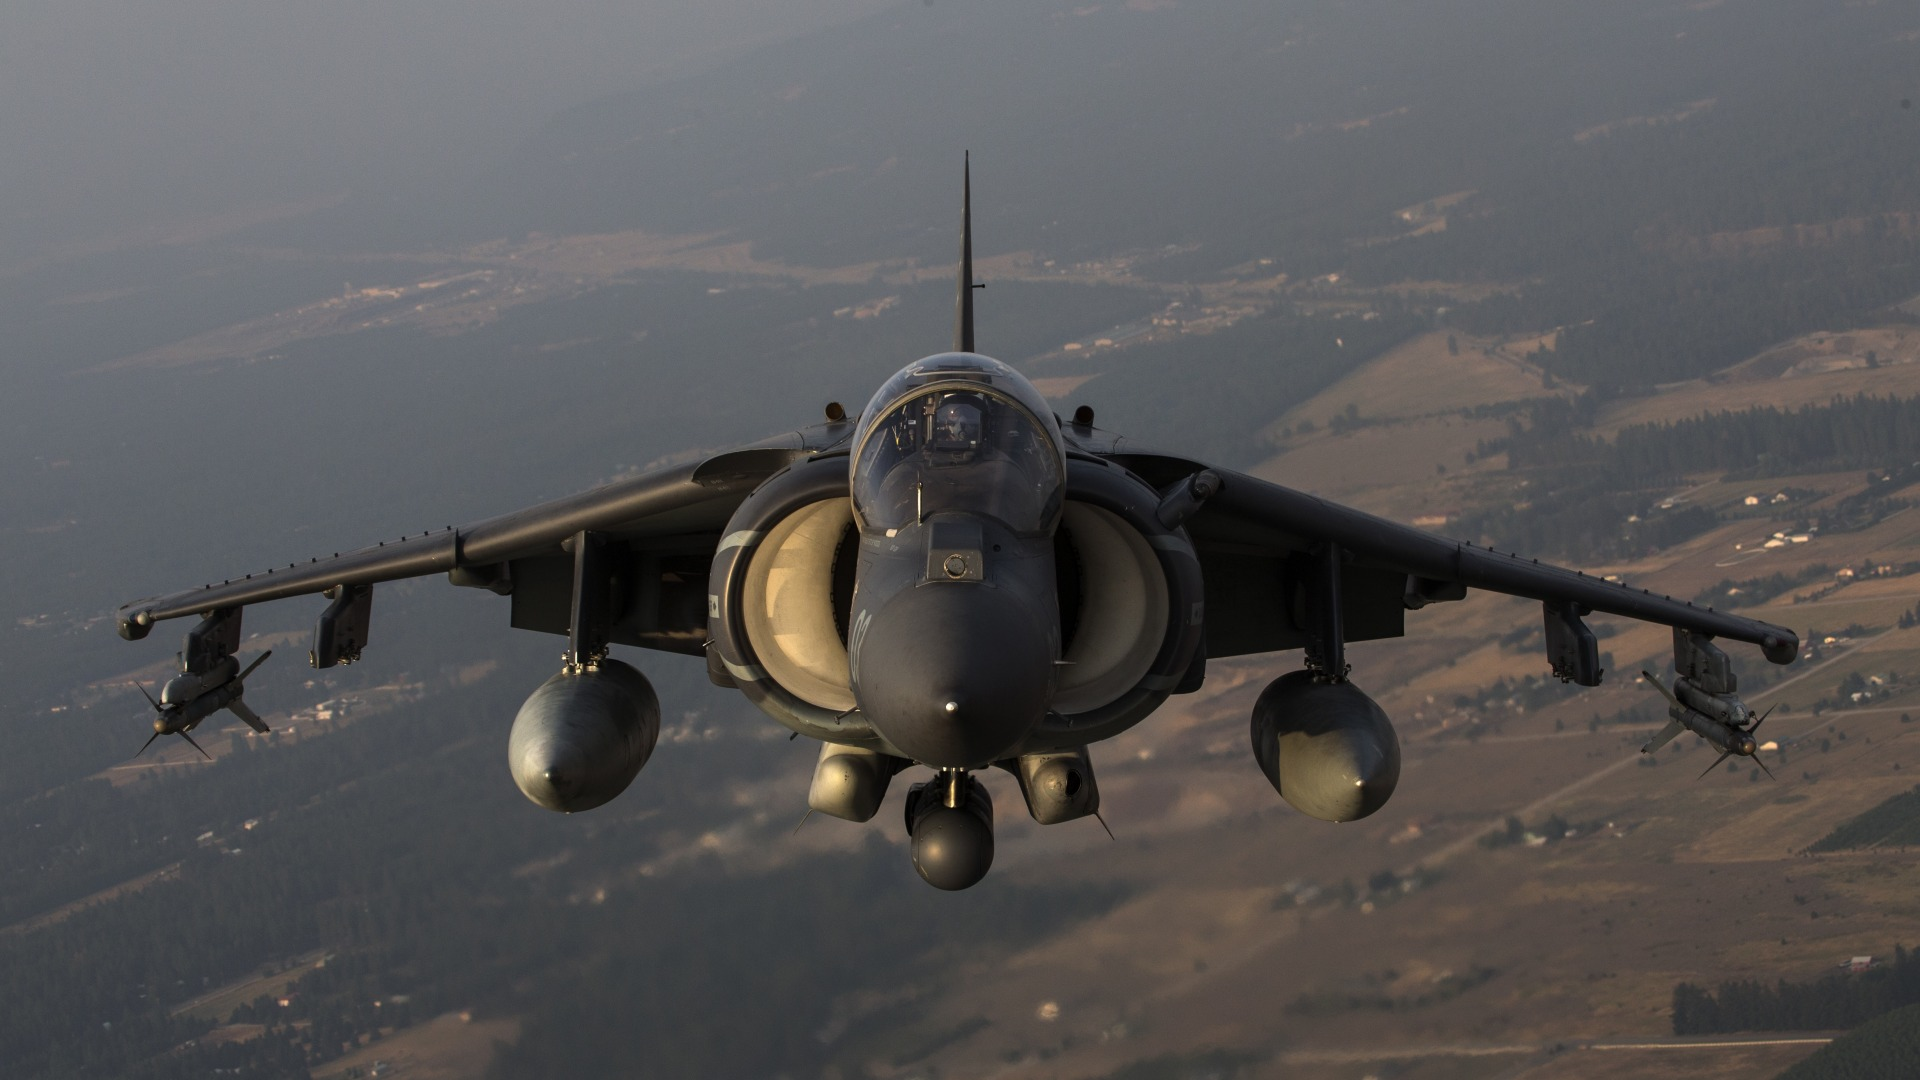 Harrier II, AV-8B, штурмовик, «Харриер» II